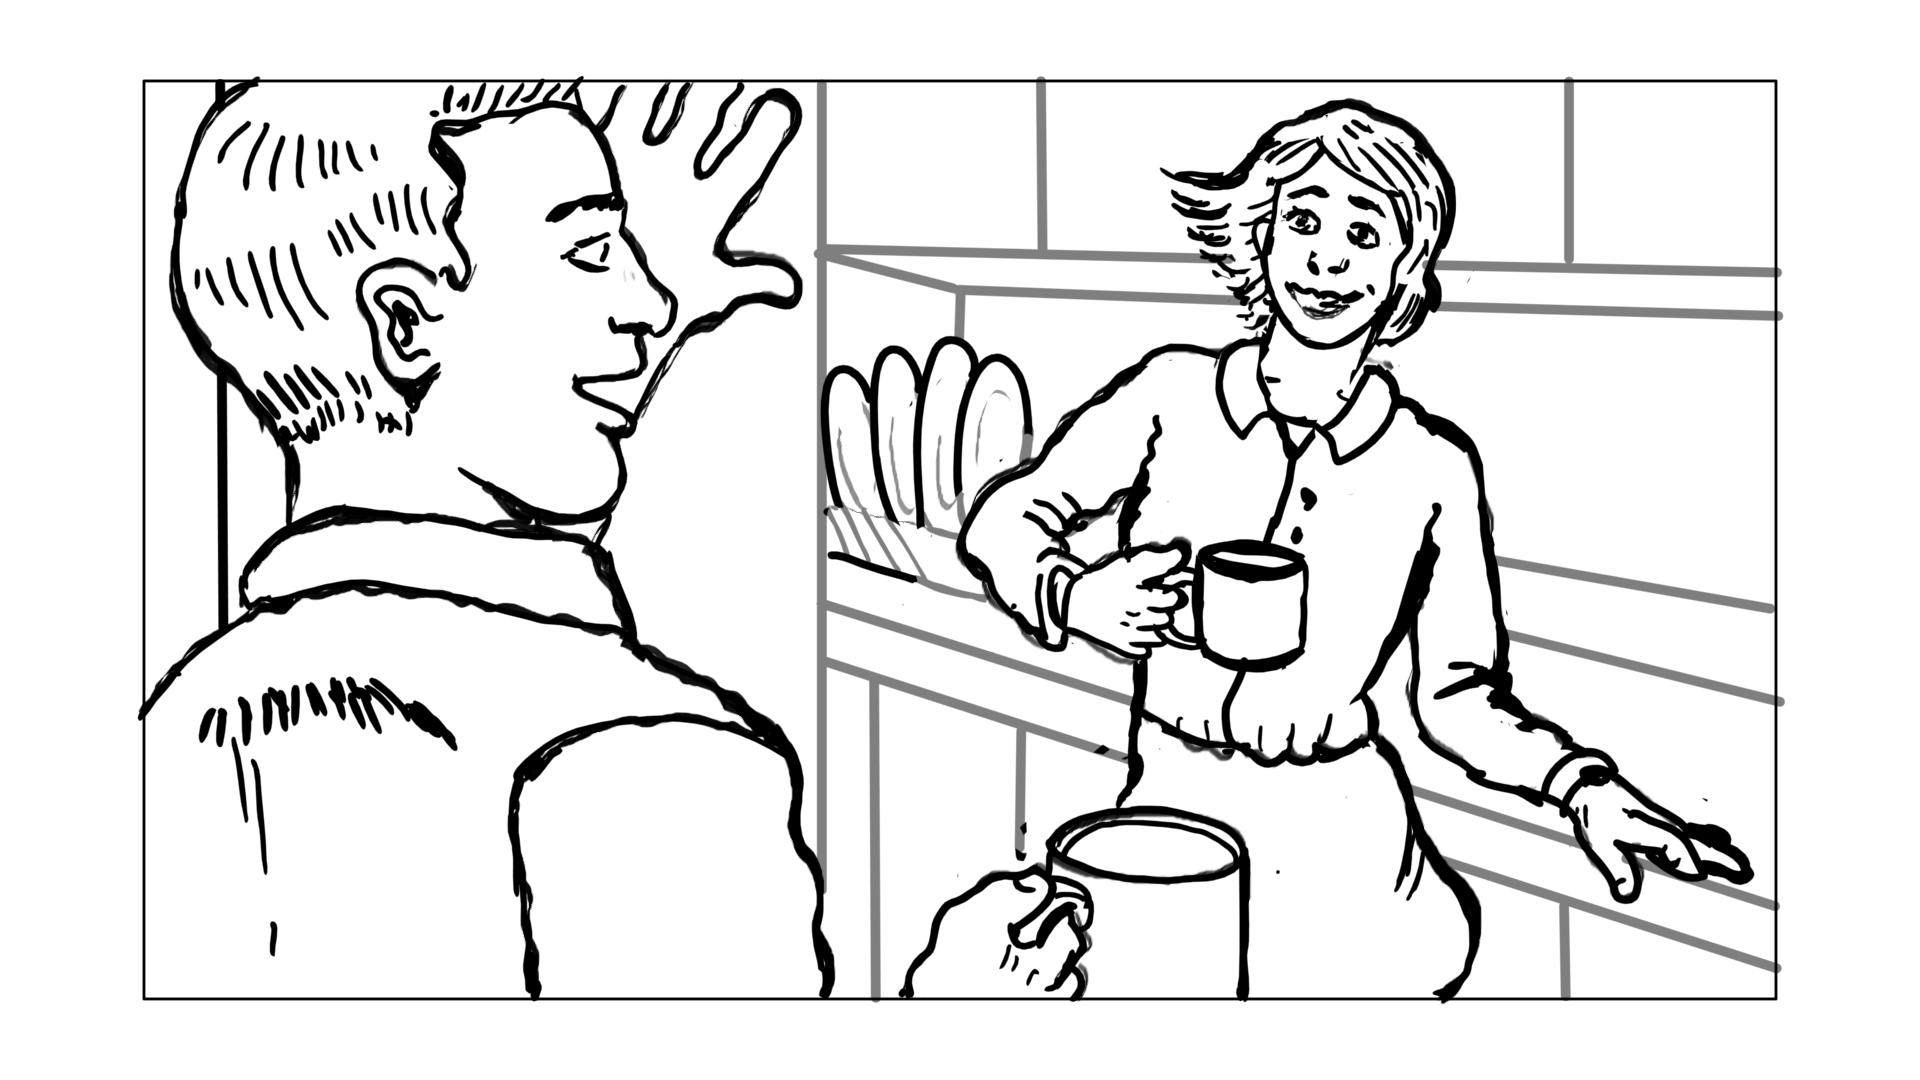 new storyboards-1-1.jpg